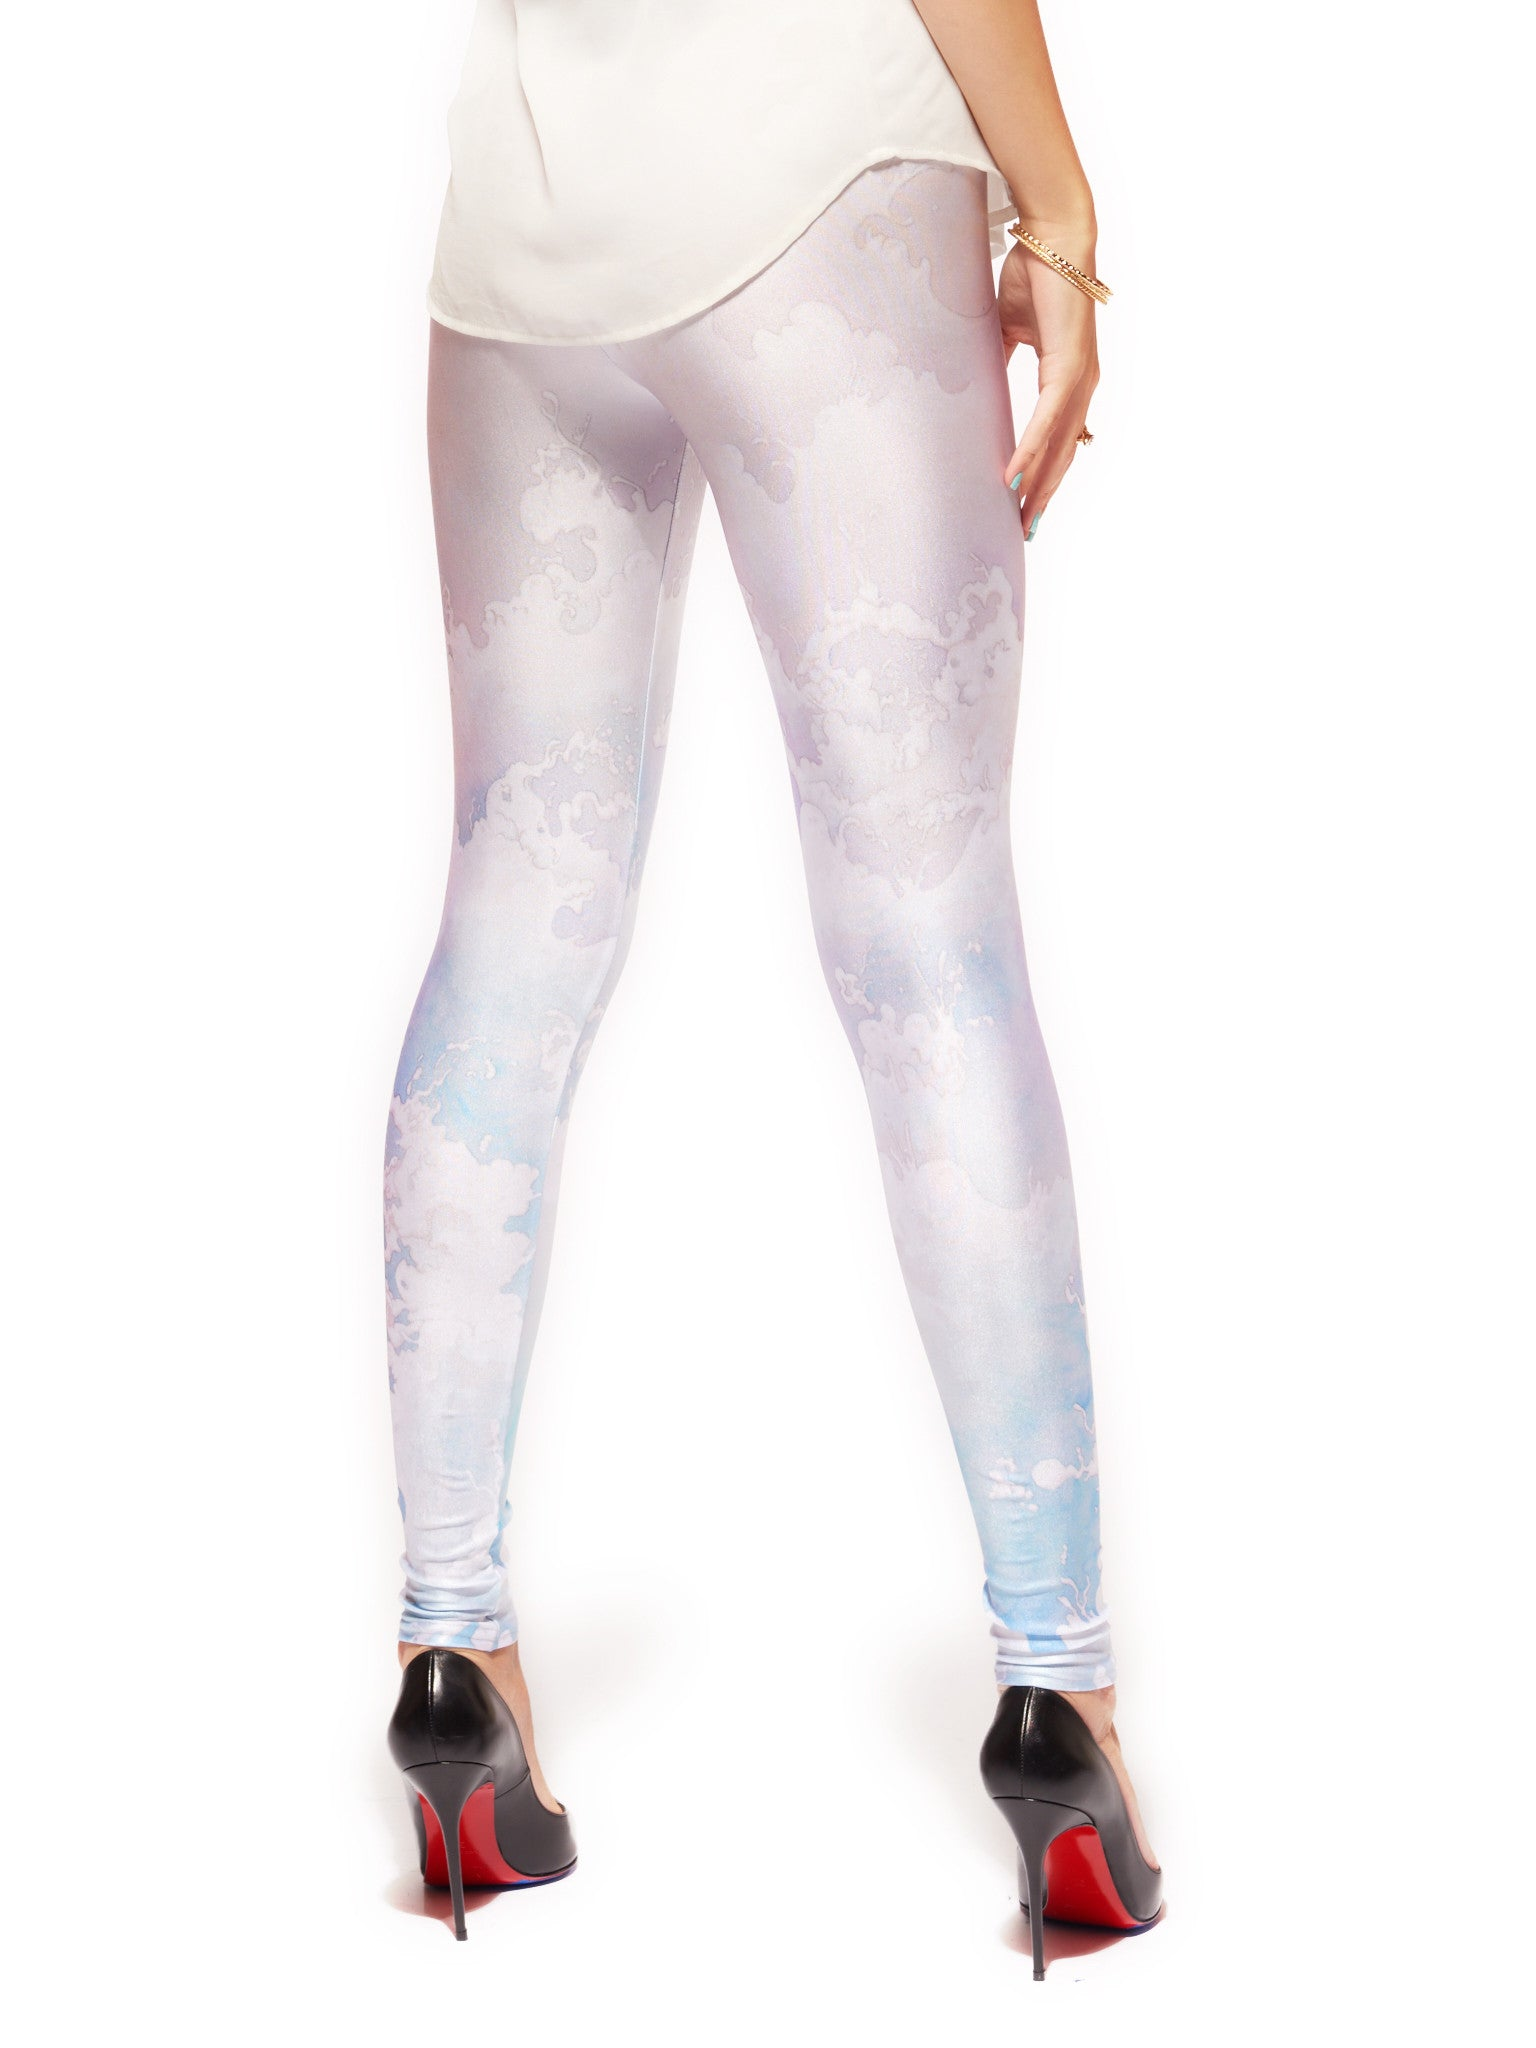 Tossed Queen West Leggings - Nuvango Gallery & Goods - 3